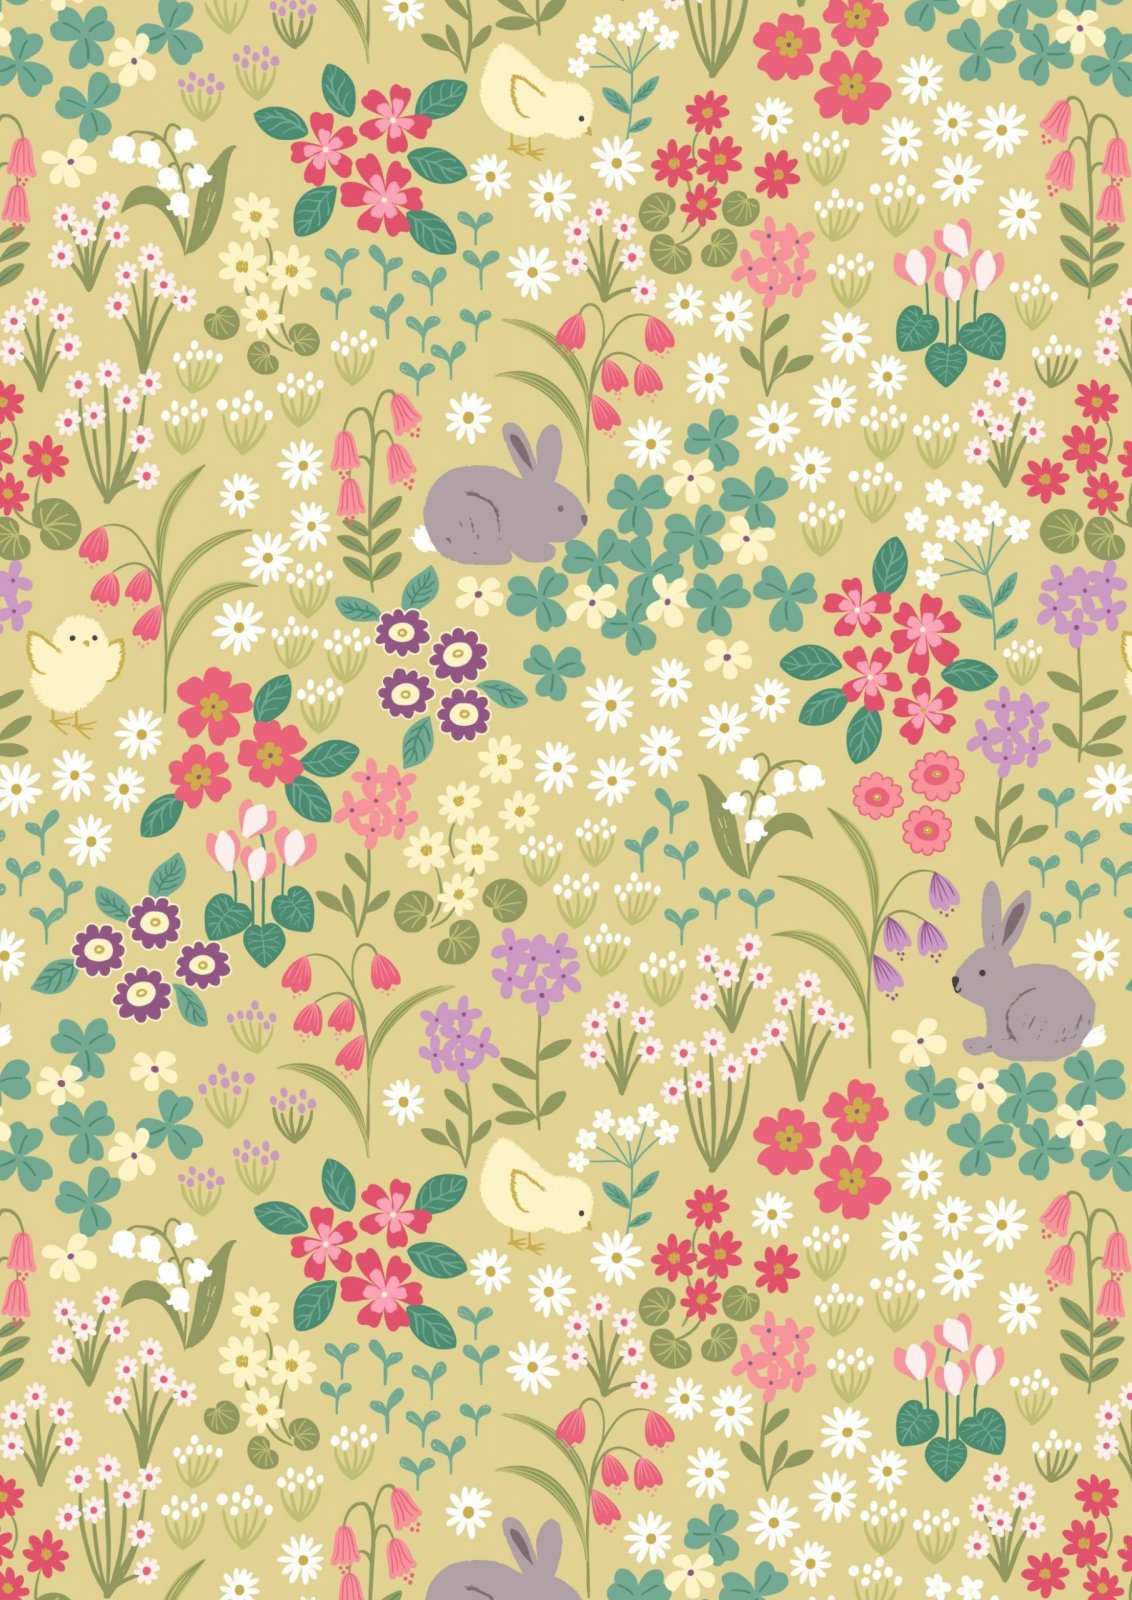 Bunny Hop Bunny & Chick Floral on Spring Yellow